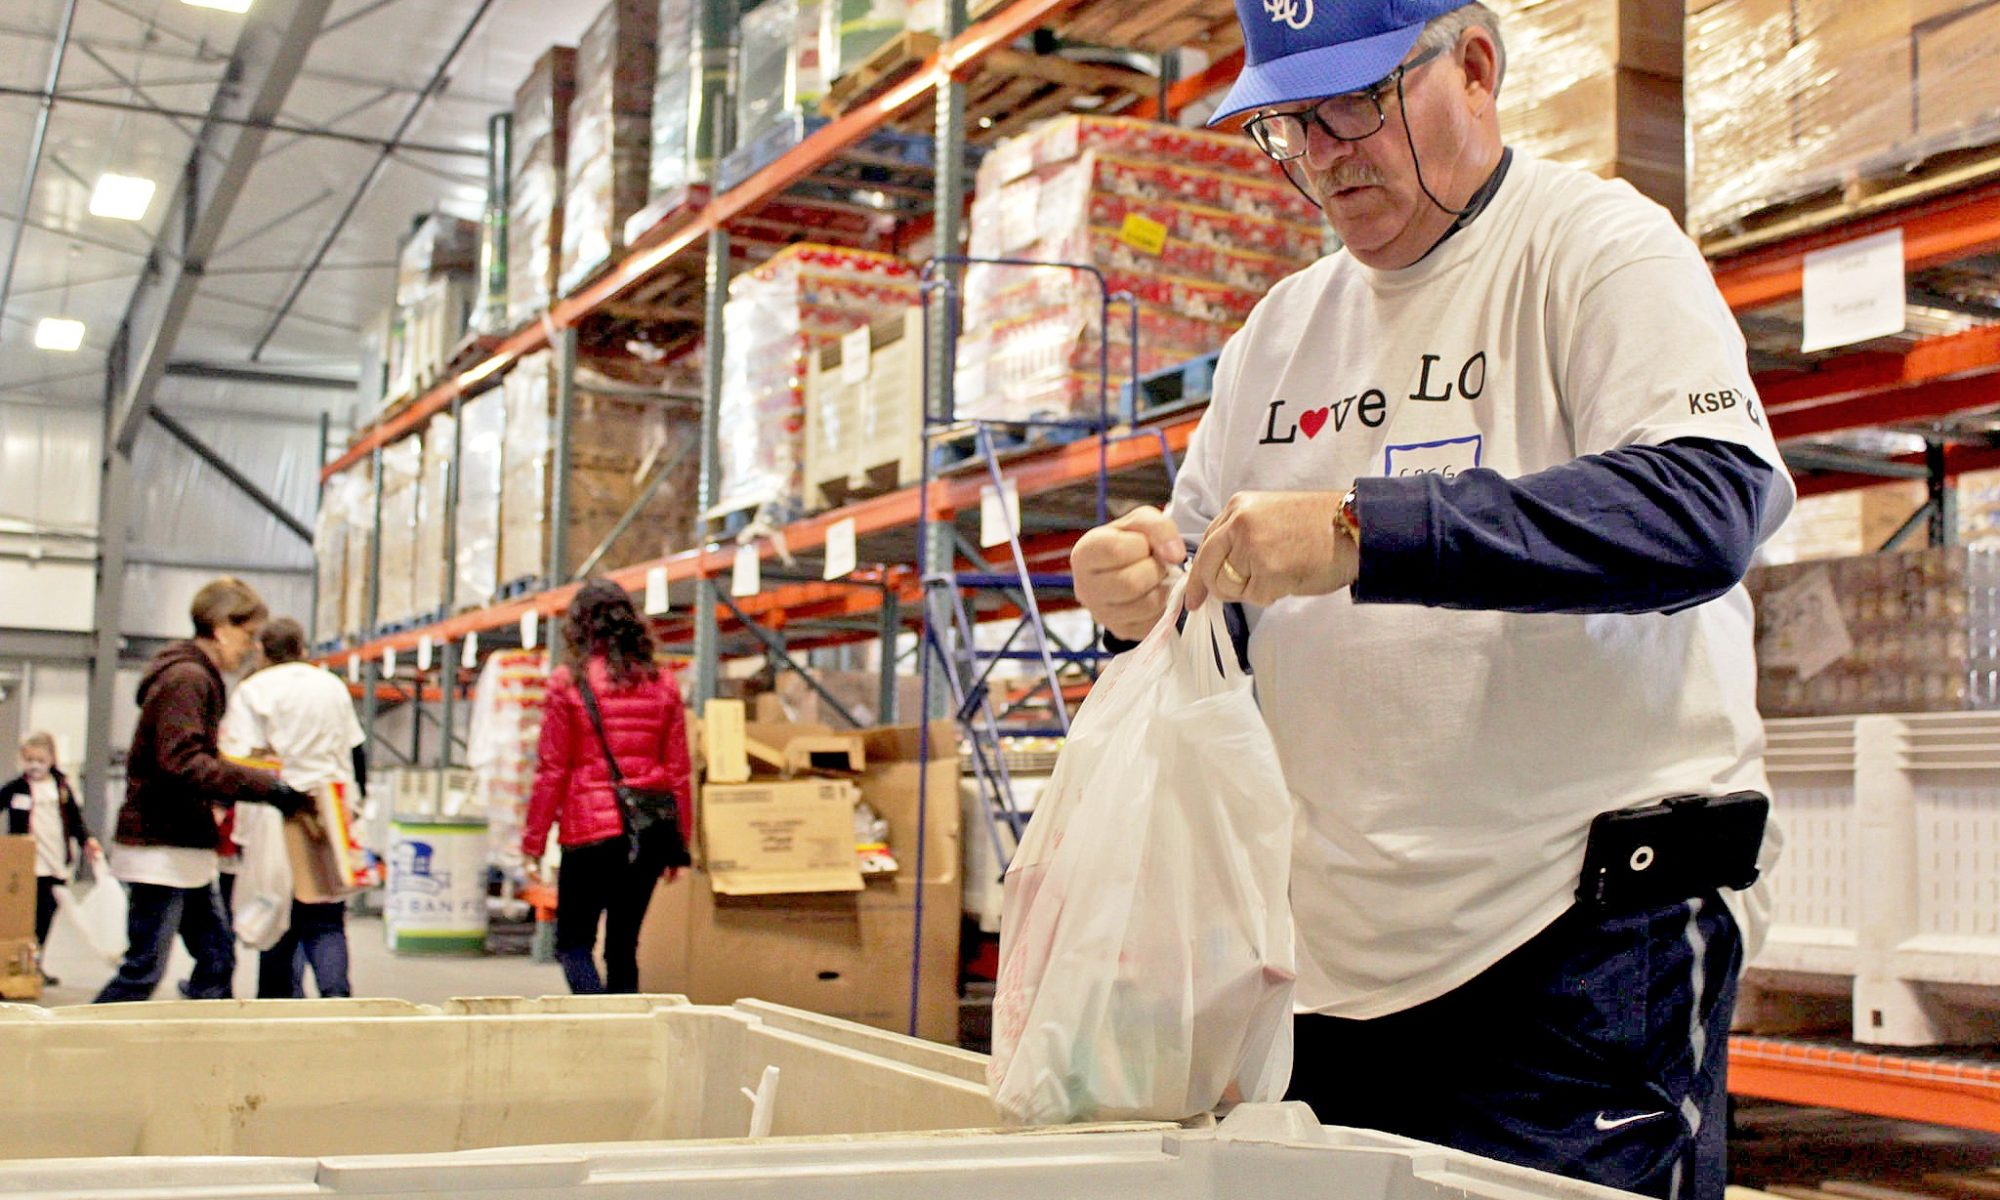 a man in a whote shirt placing food items in a white plastic bag for distribution